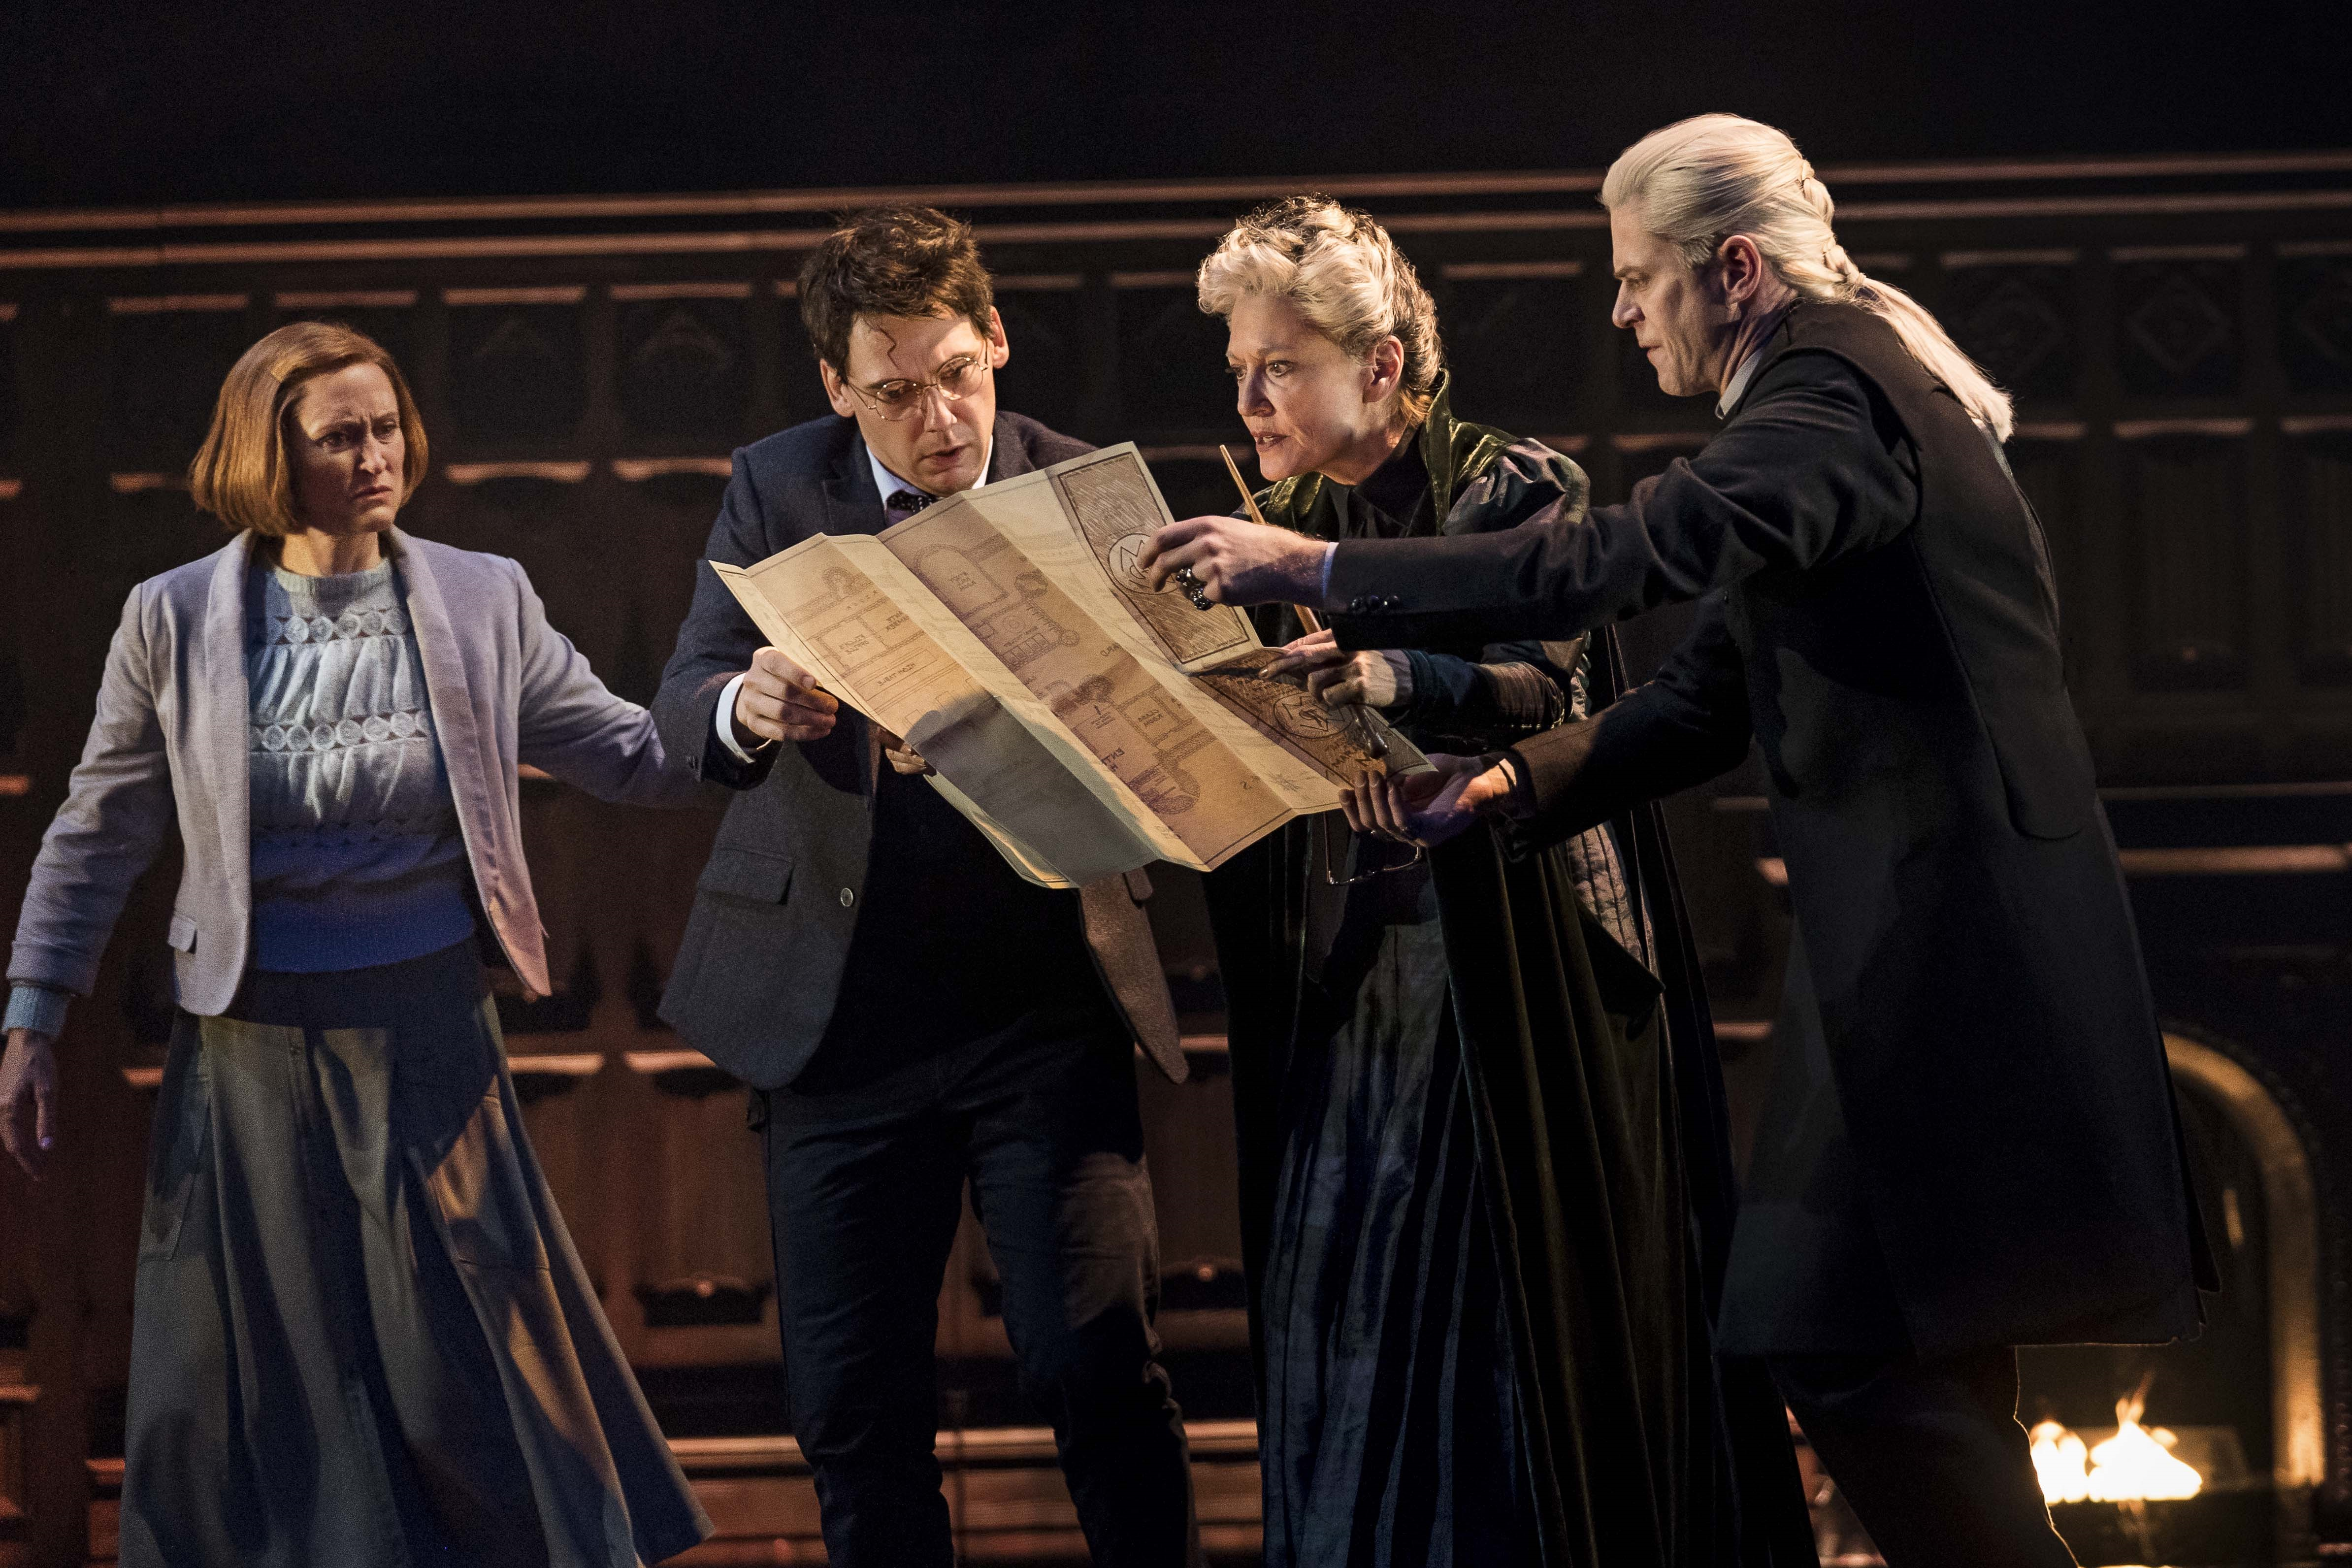 """Ginny, Harry, Professor McGonagall and Draco examine the Marauder's Map in a scene from """"Harry Potter and the Cursed Child"""" San Francisco."""